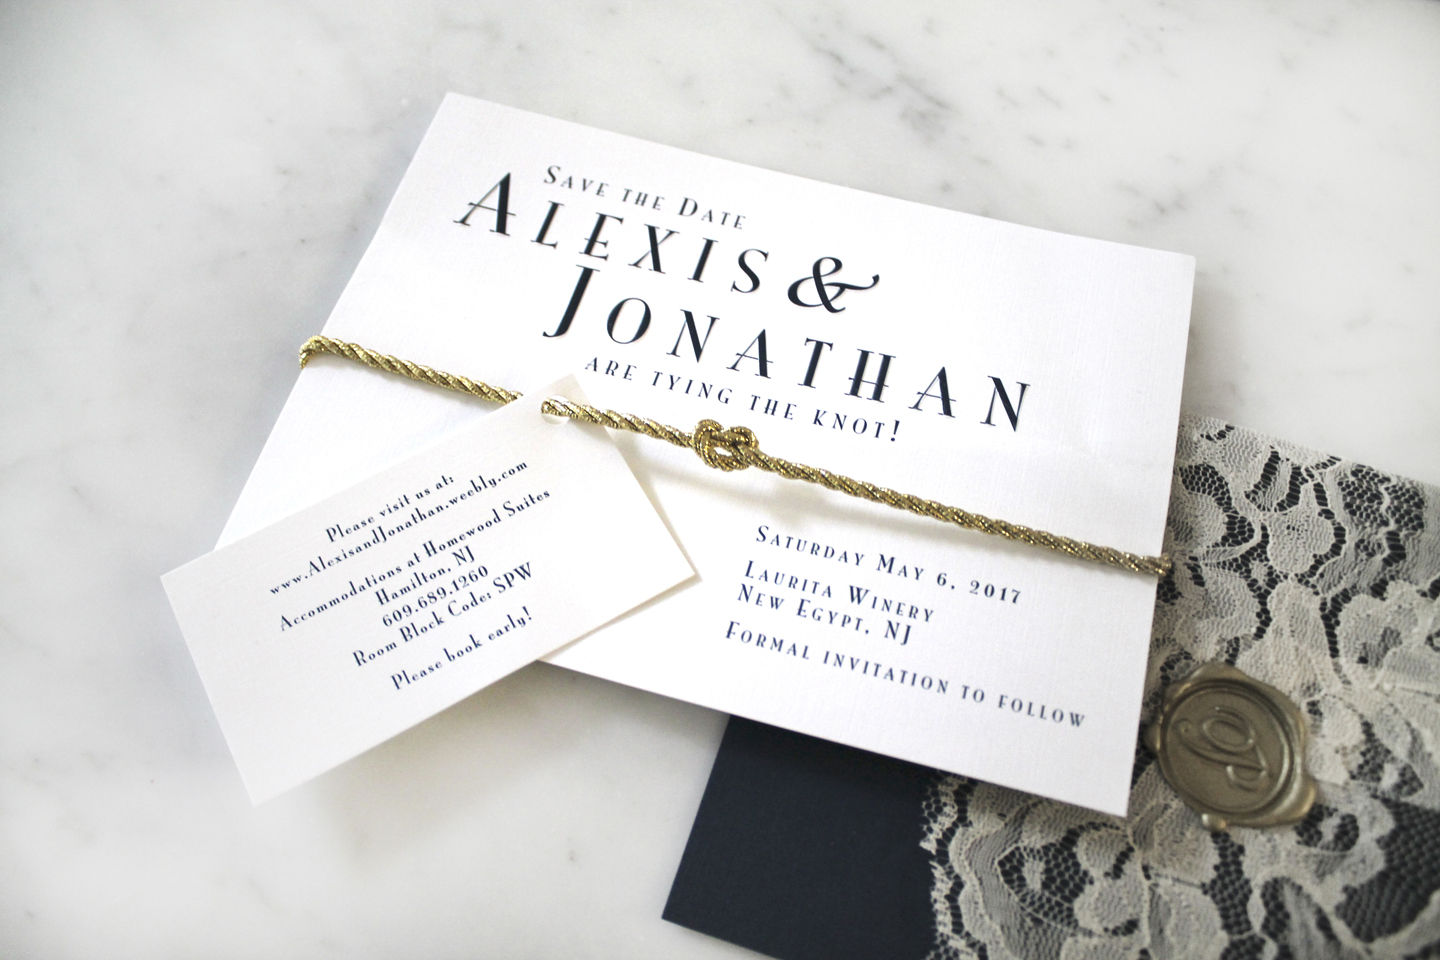 Alexis & Jonathan Wedding Invitation